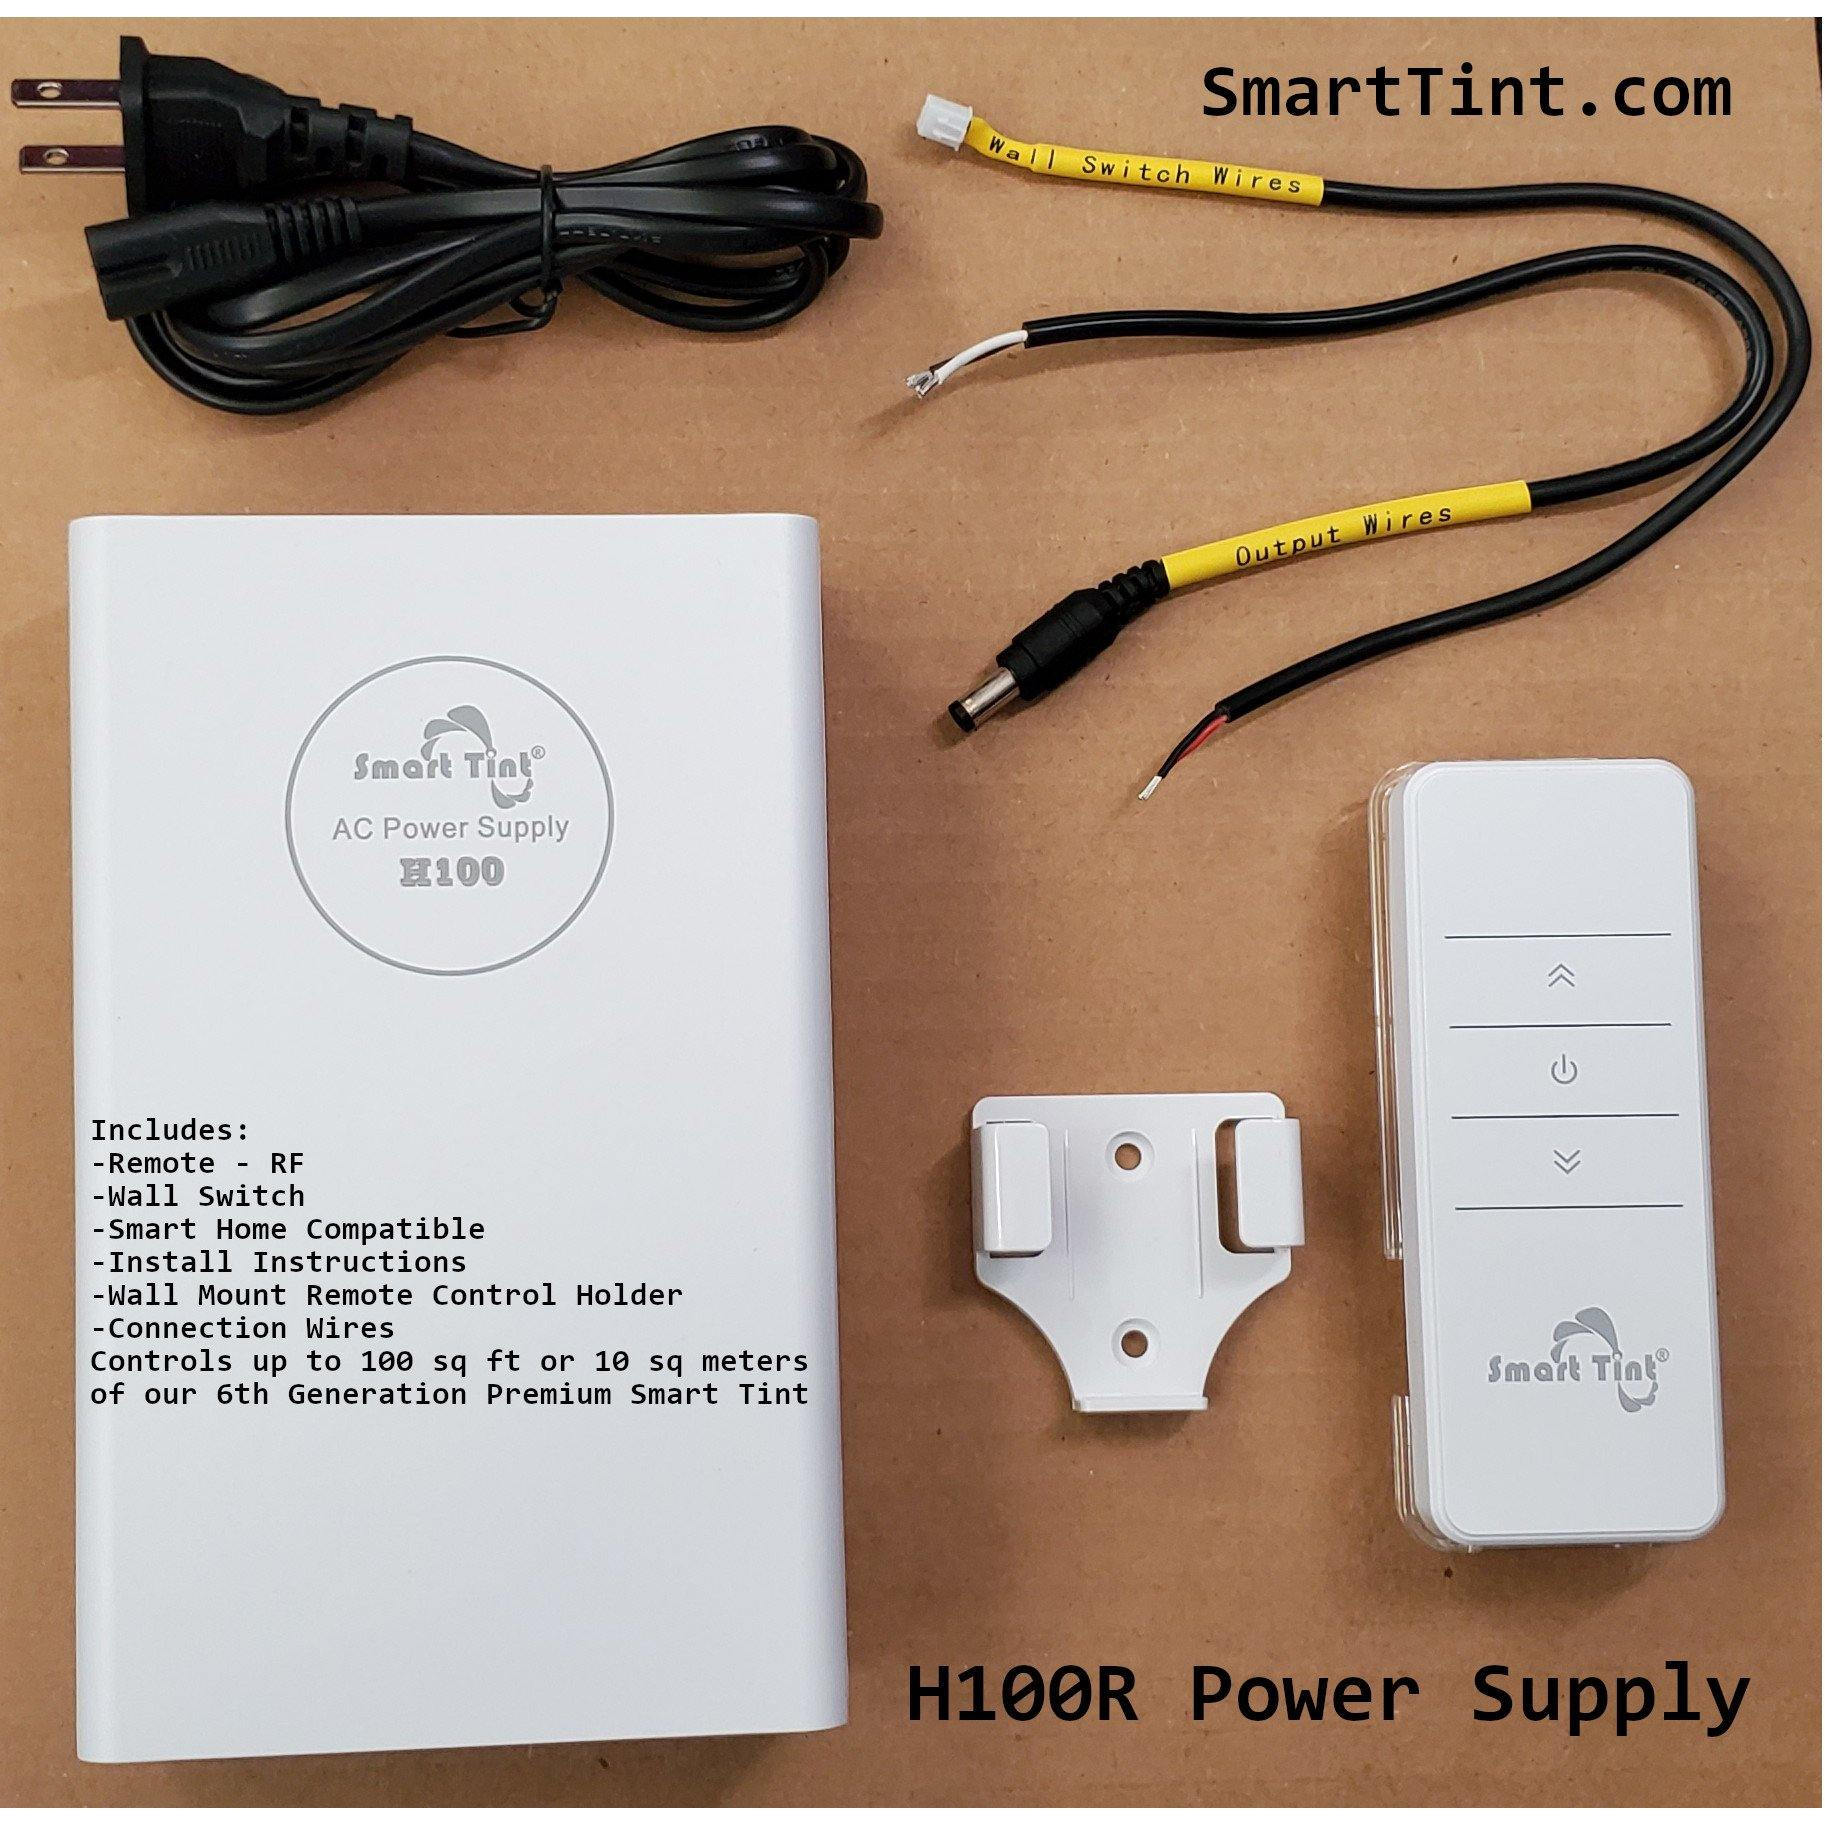 Smart Tint Power Supply H-100R with Remote Control/Wall Switch - Smart Film